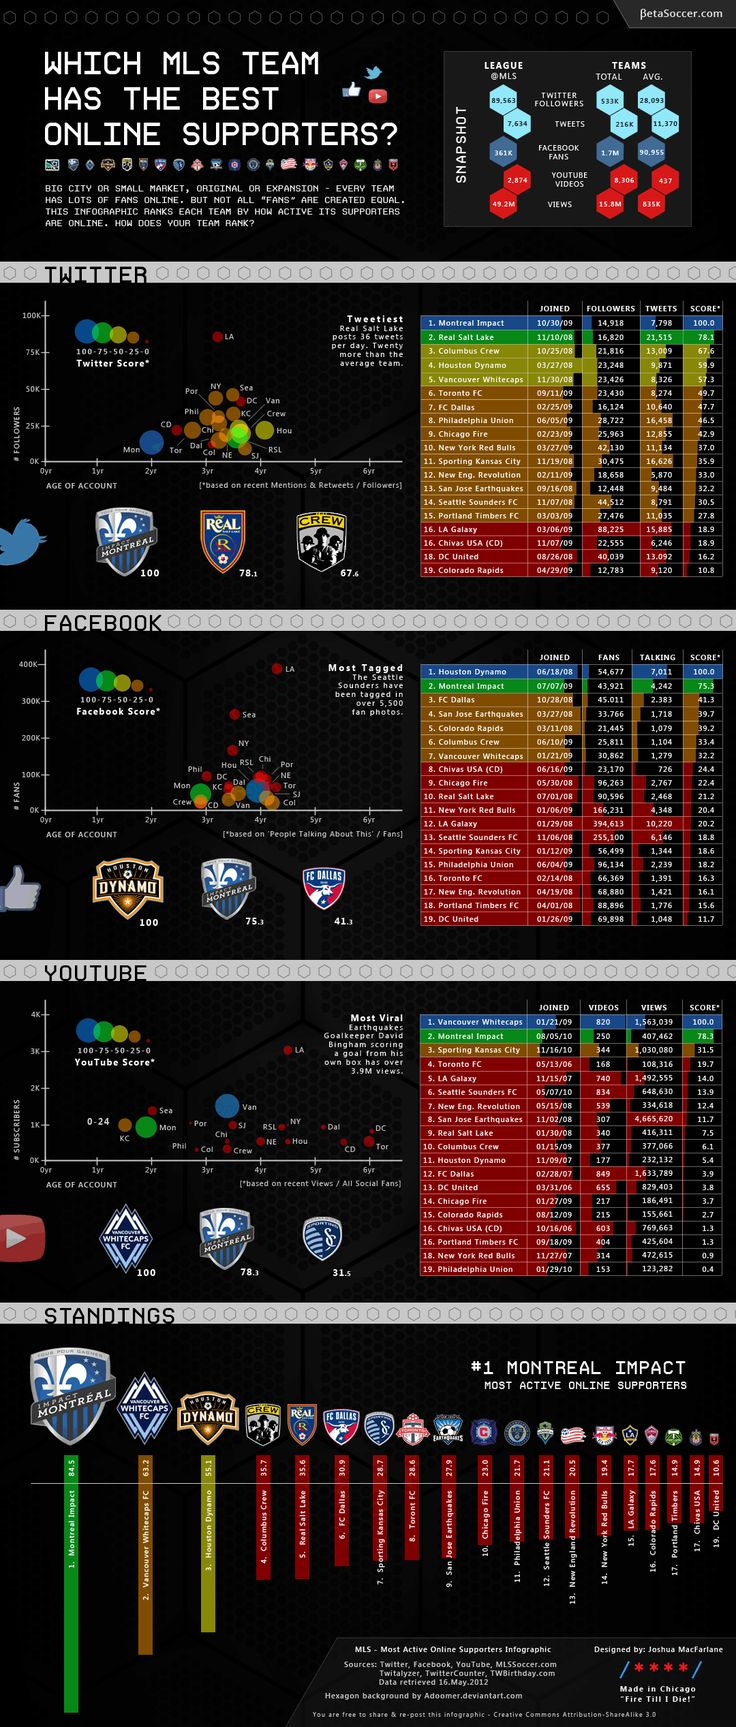 "Which Major League Soccer (MLS) Team Has the Best Online Supporters?  Big city or small market, original or expansion - every team has lots of fans online. But not all ""fans"" are created equal. This infographic ranks"